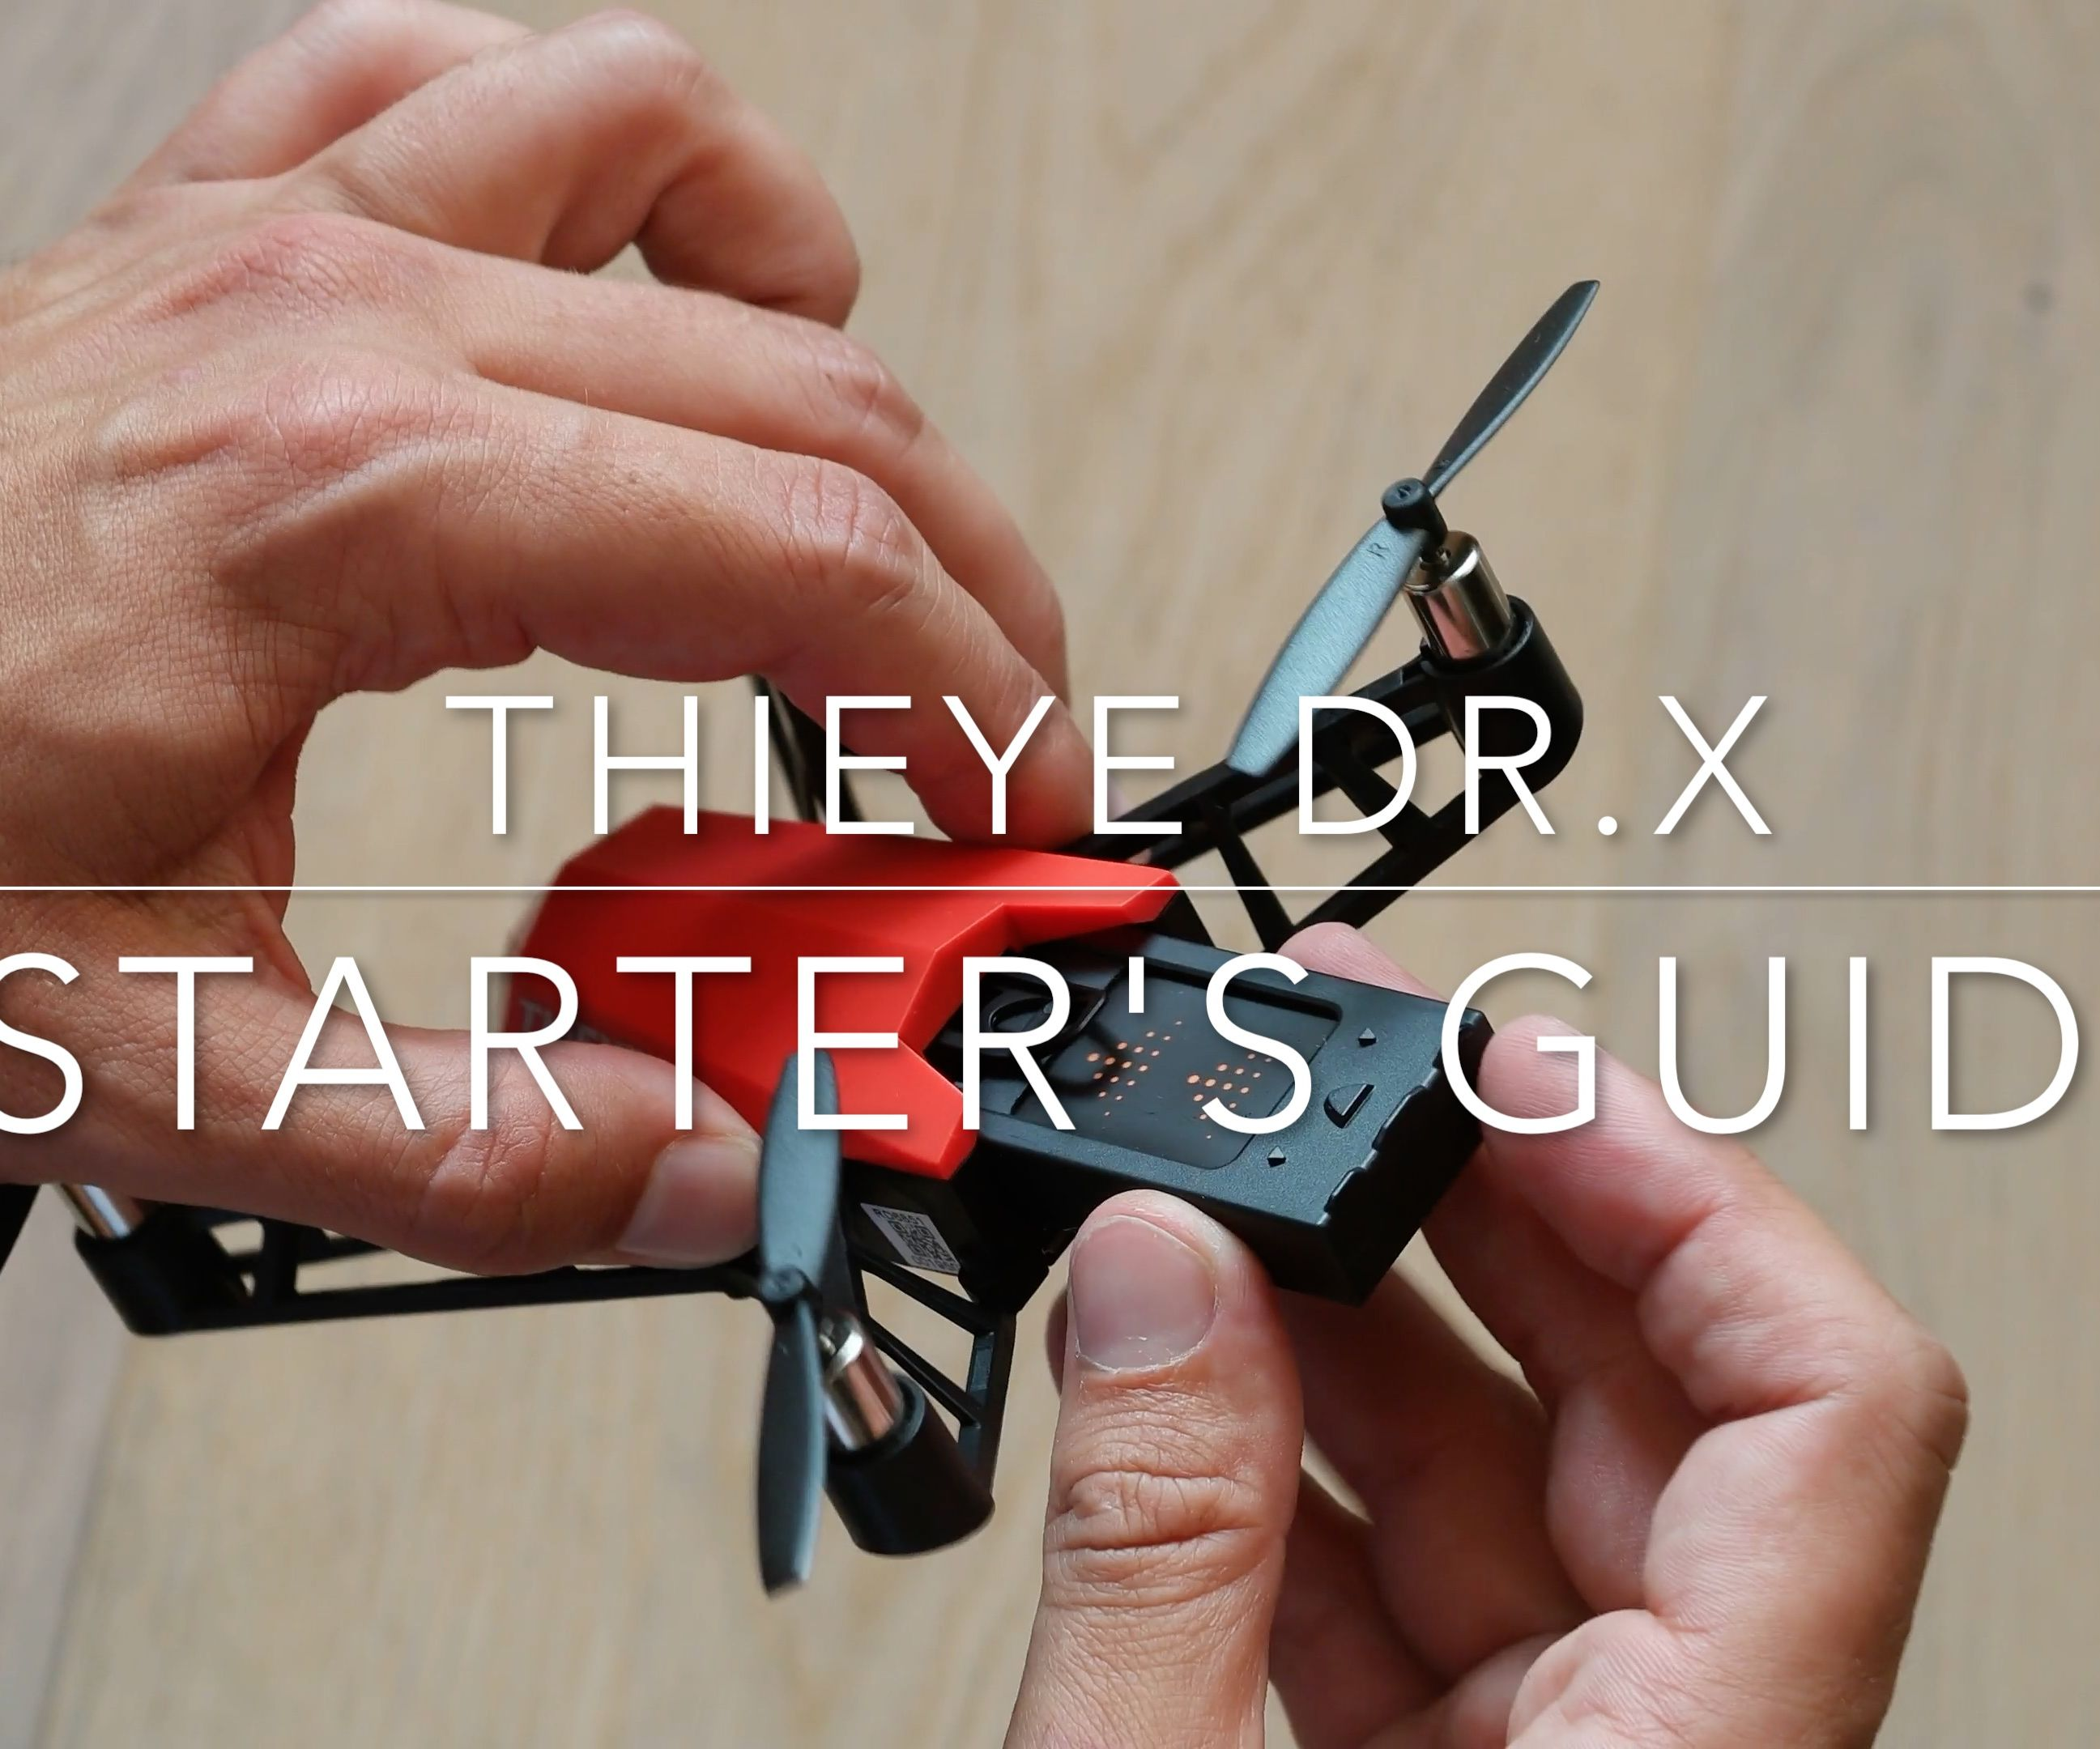 Starter's Guide ThiEye Dr. X